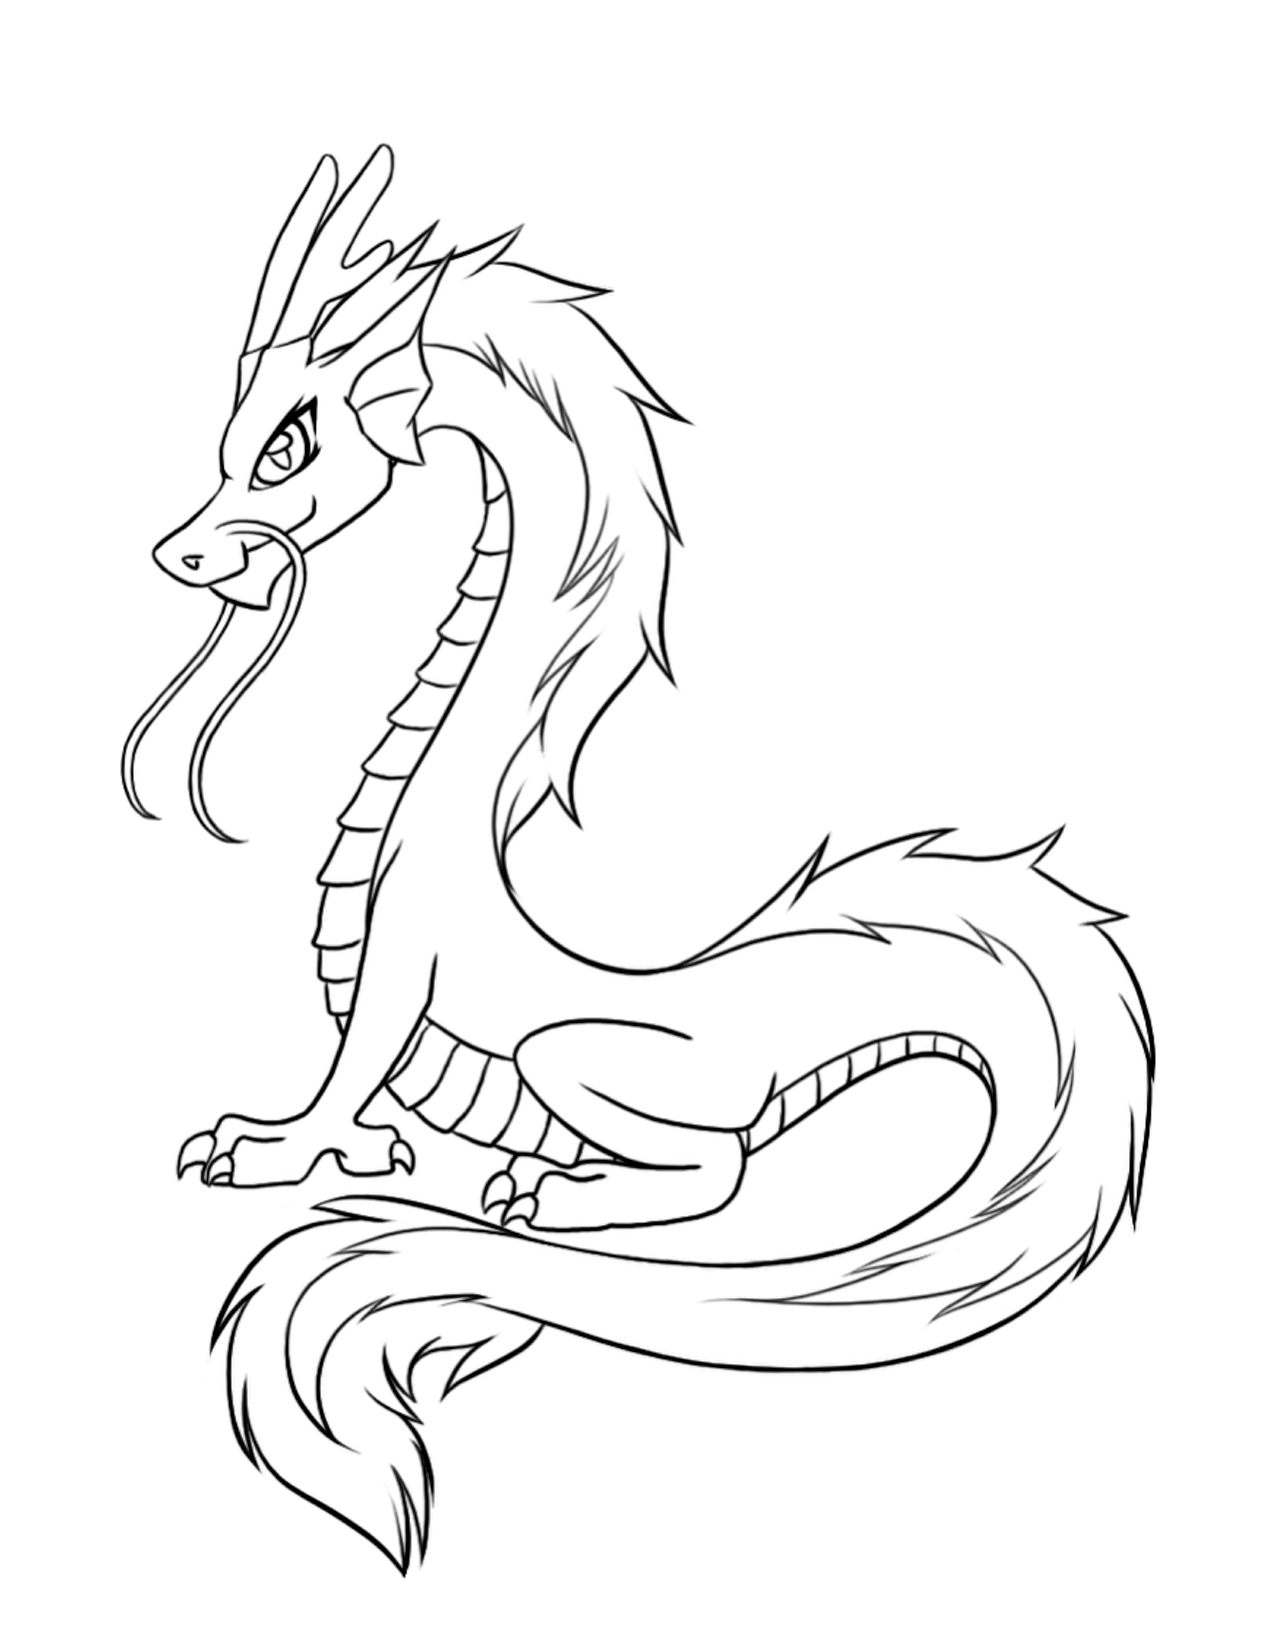 chinese dragon coloring pages simple chinese dragon outline clipart best pages chinese dragon coloring